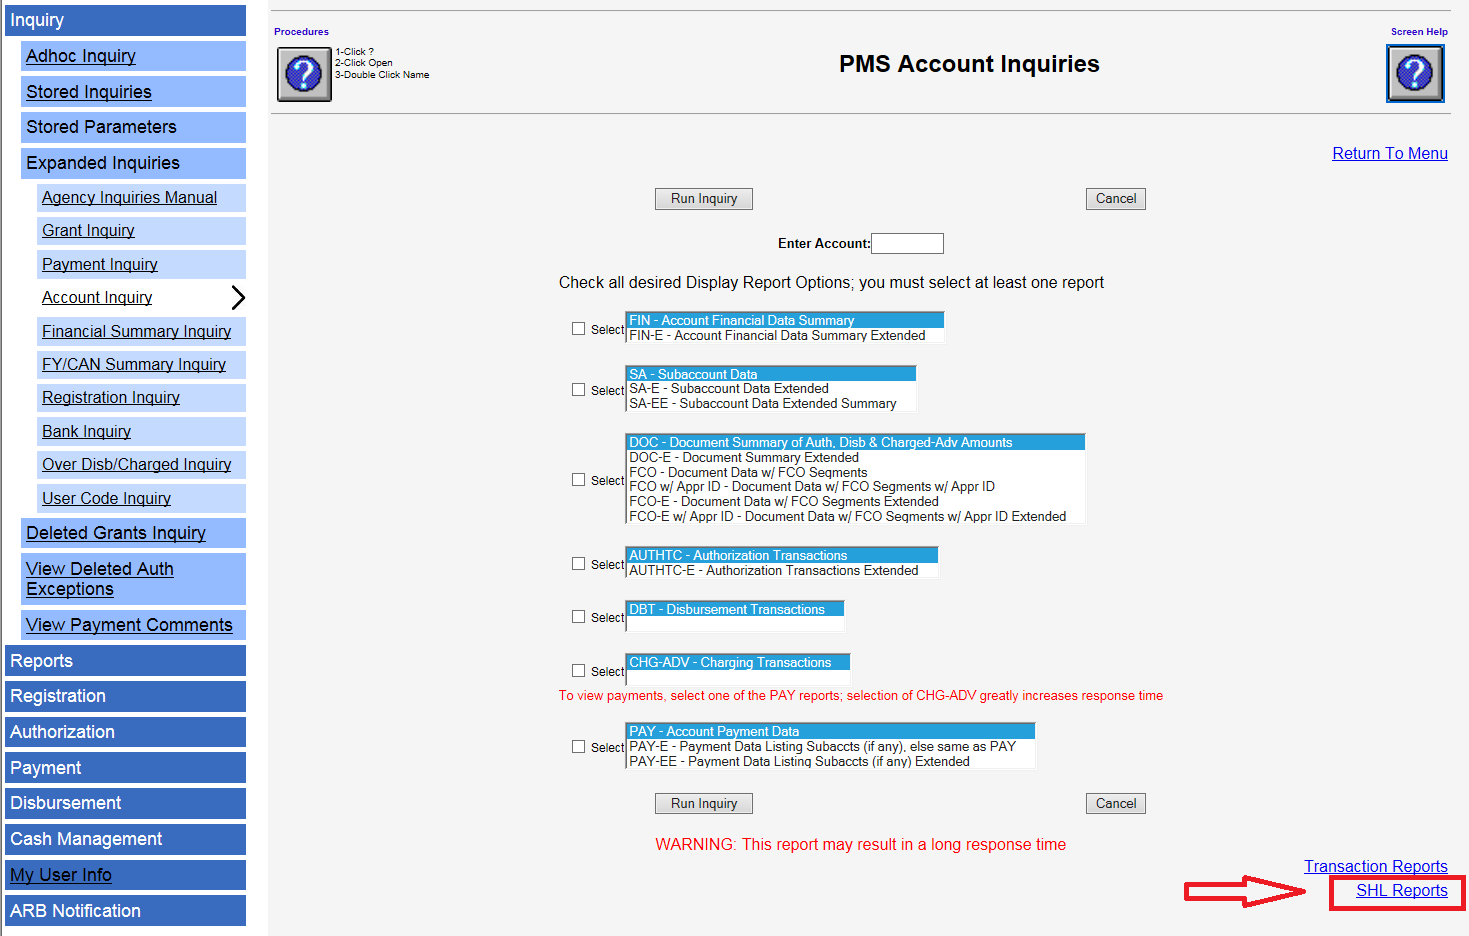 Screen shot of the PMS Account Inquiries page with the SHL Reports link in the lower right corner highlighted with a red box.